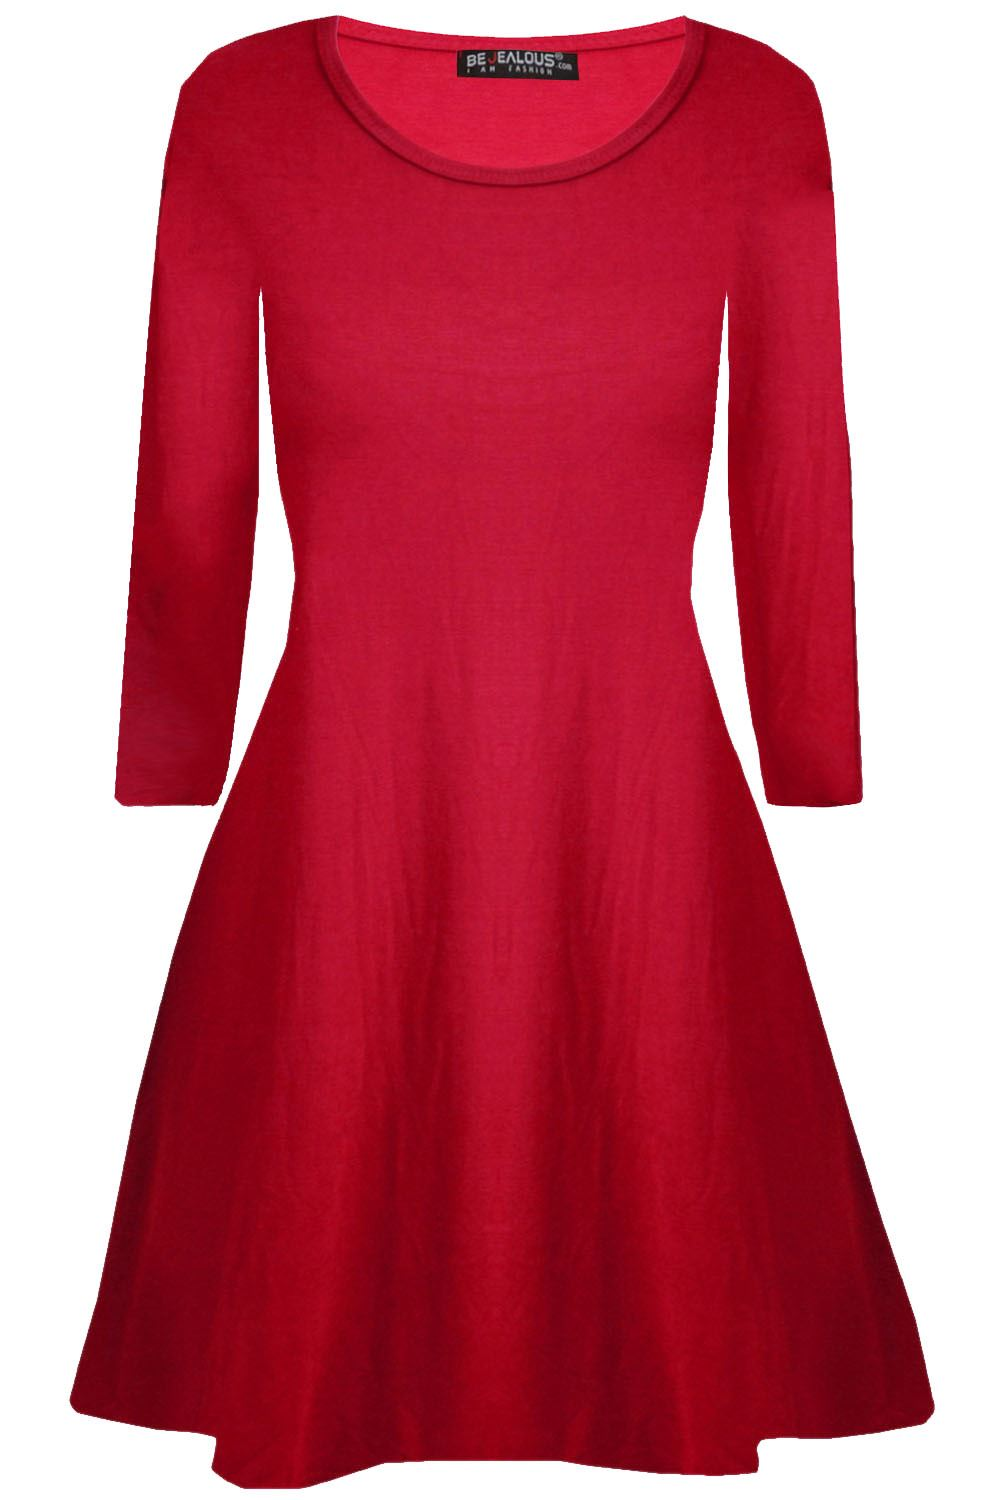 Womens-Plain-Jersey-Flared-Long-Sleeve-Ladies-Party-Mini-Swing-Skater-Dress-8-24